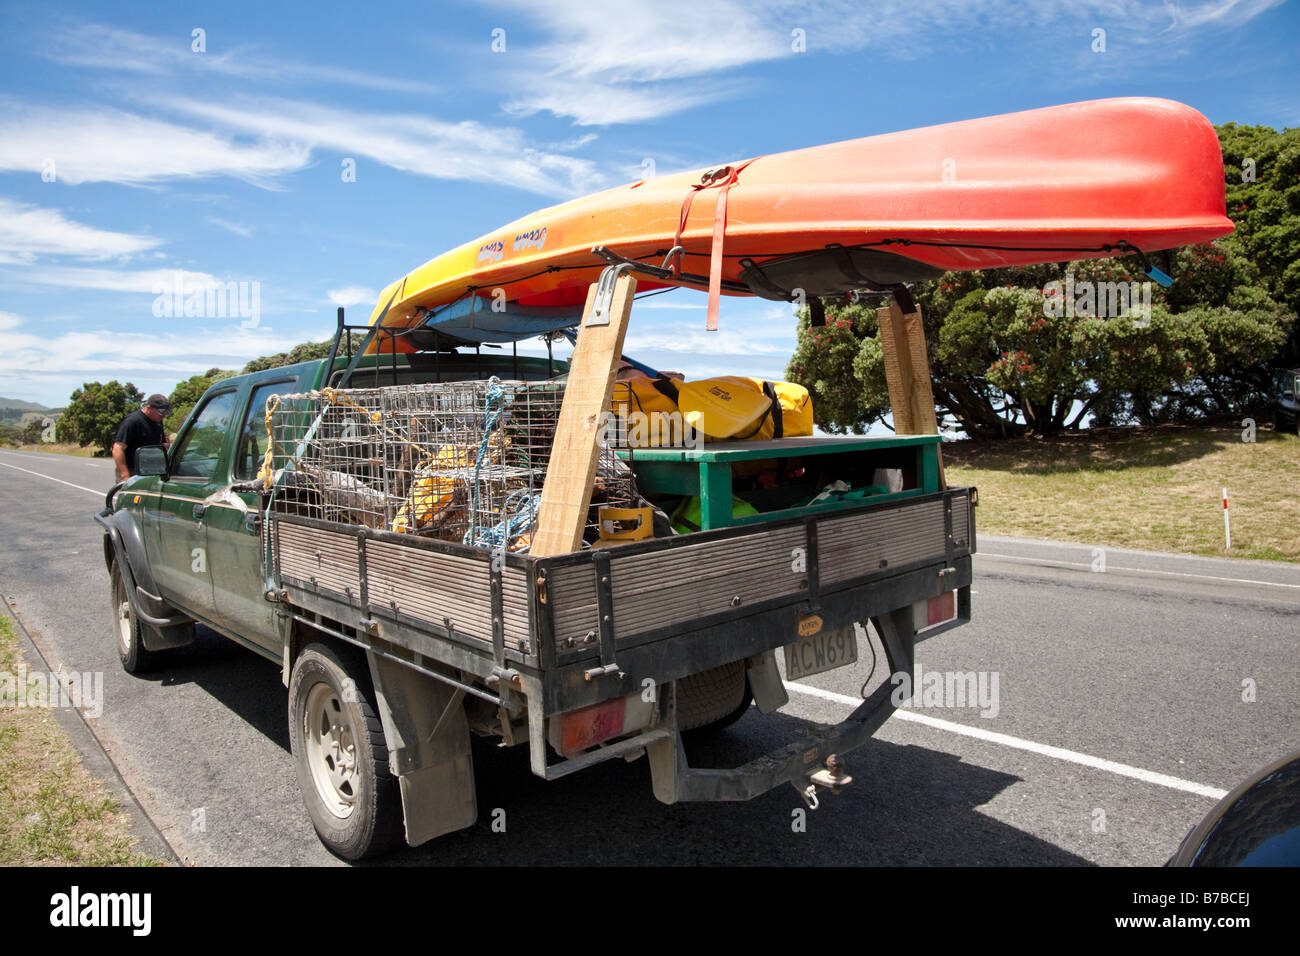 Pickup Truck Ute Loaded For The Holidays With Lobster Traps And Kayak Stock